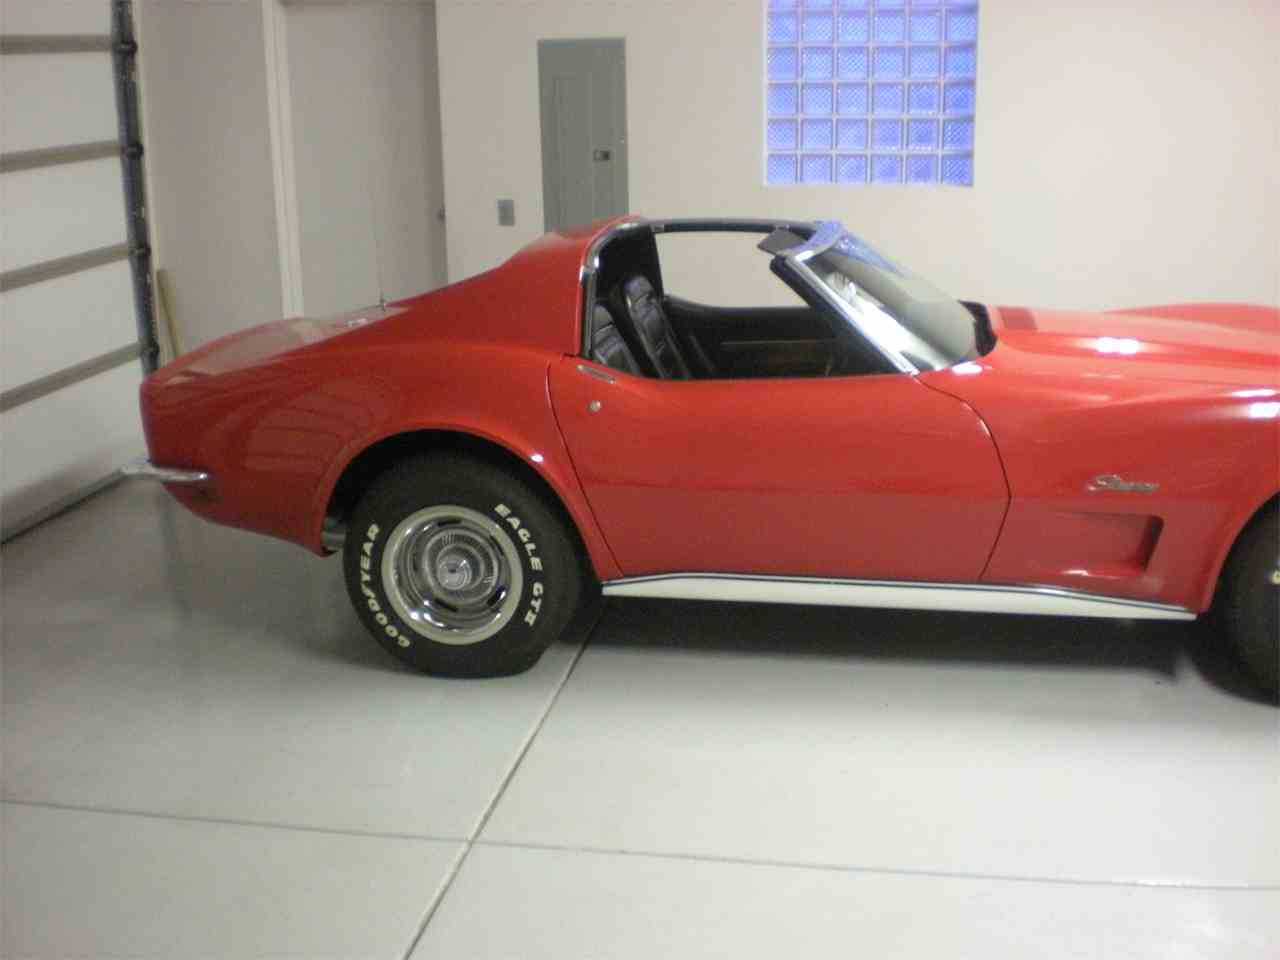 Large Picture of Classic 1973 Chevrolet Corvette located in Fountain Hills Arizona - $21,000.00 Offered by a Private Seller - NAJ9